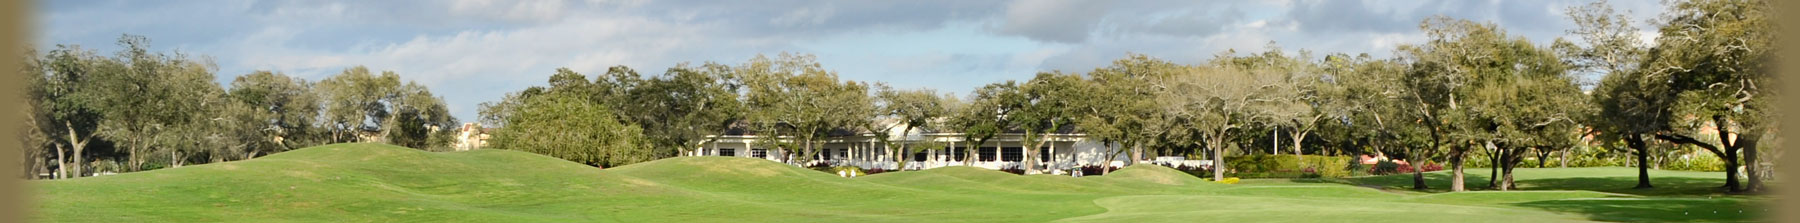 Grande Oaks Golf Course